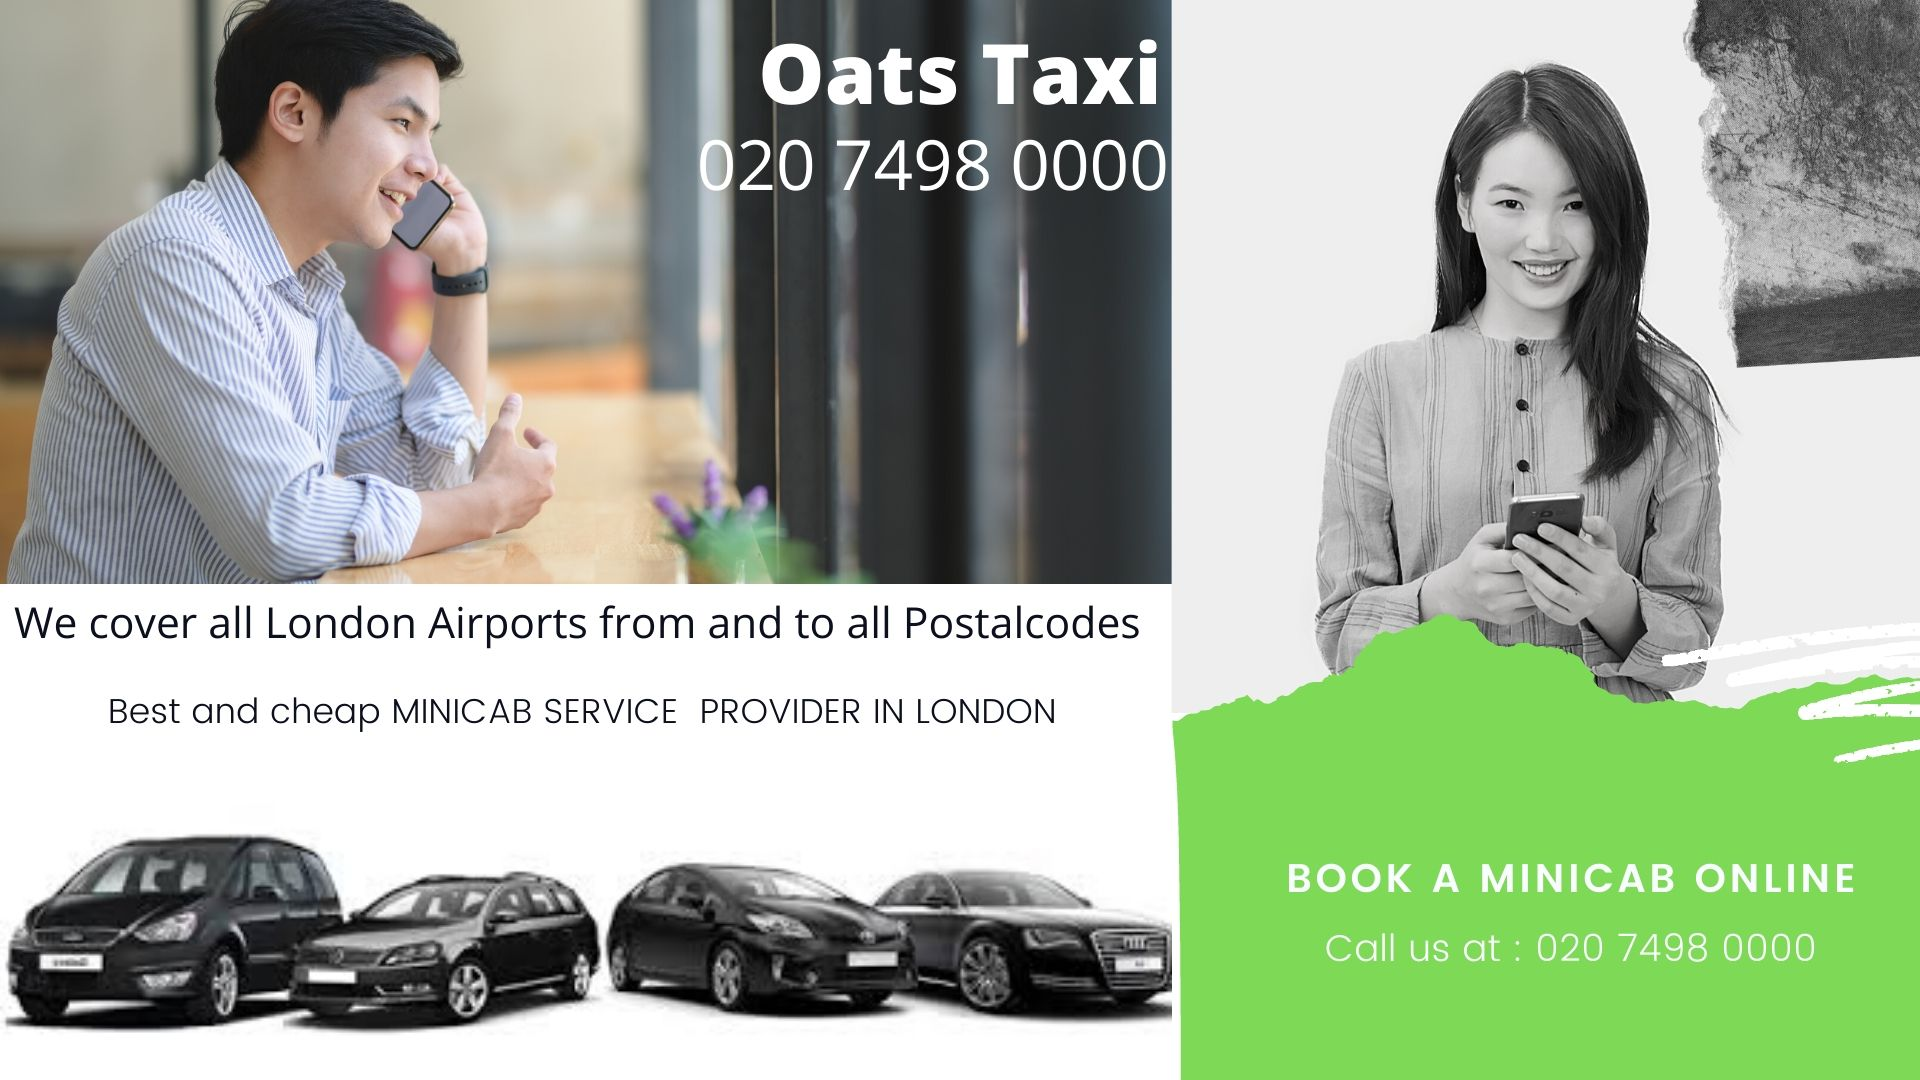 Minicab Near ILMINSTER GARDENS, Battersea SW11, Minicab From Battersea SW11 To Gatwick Airport